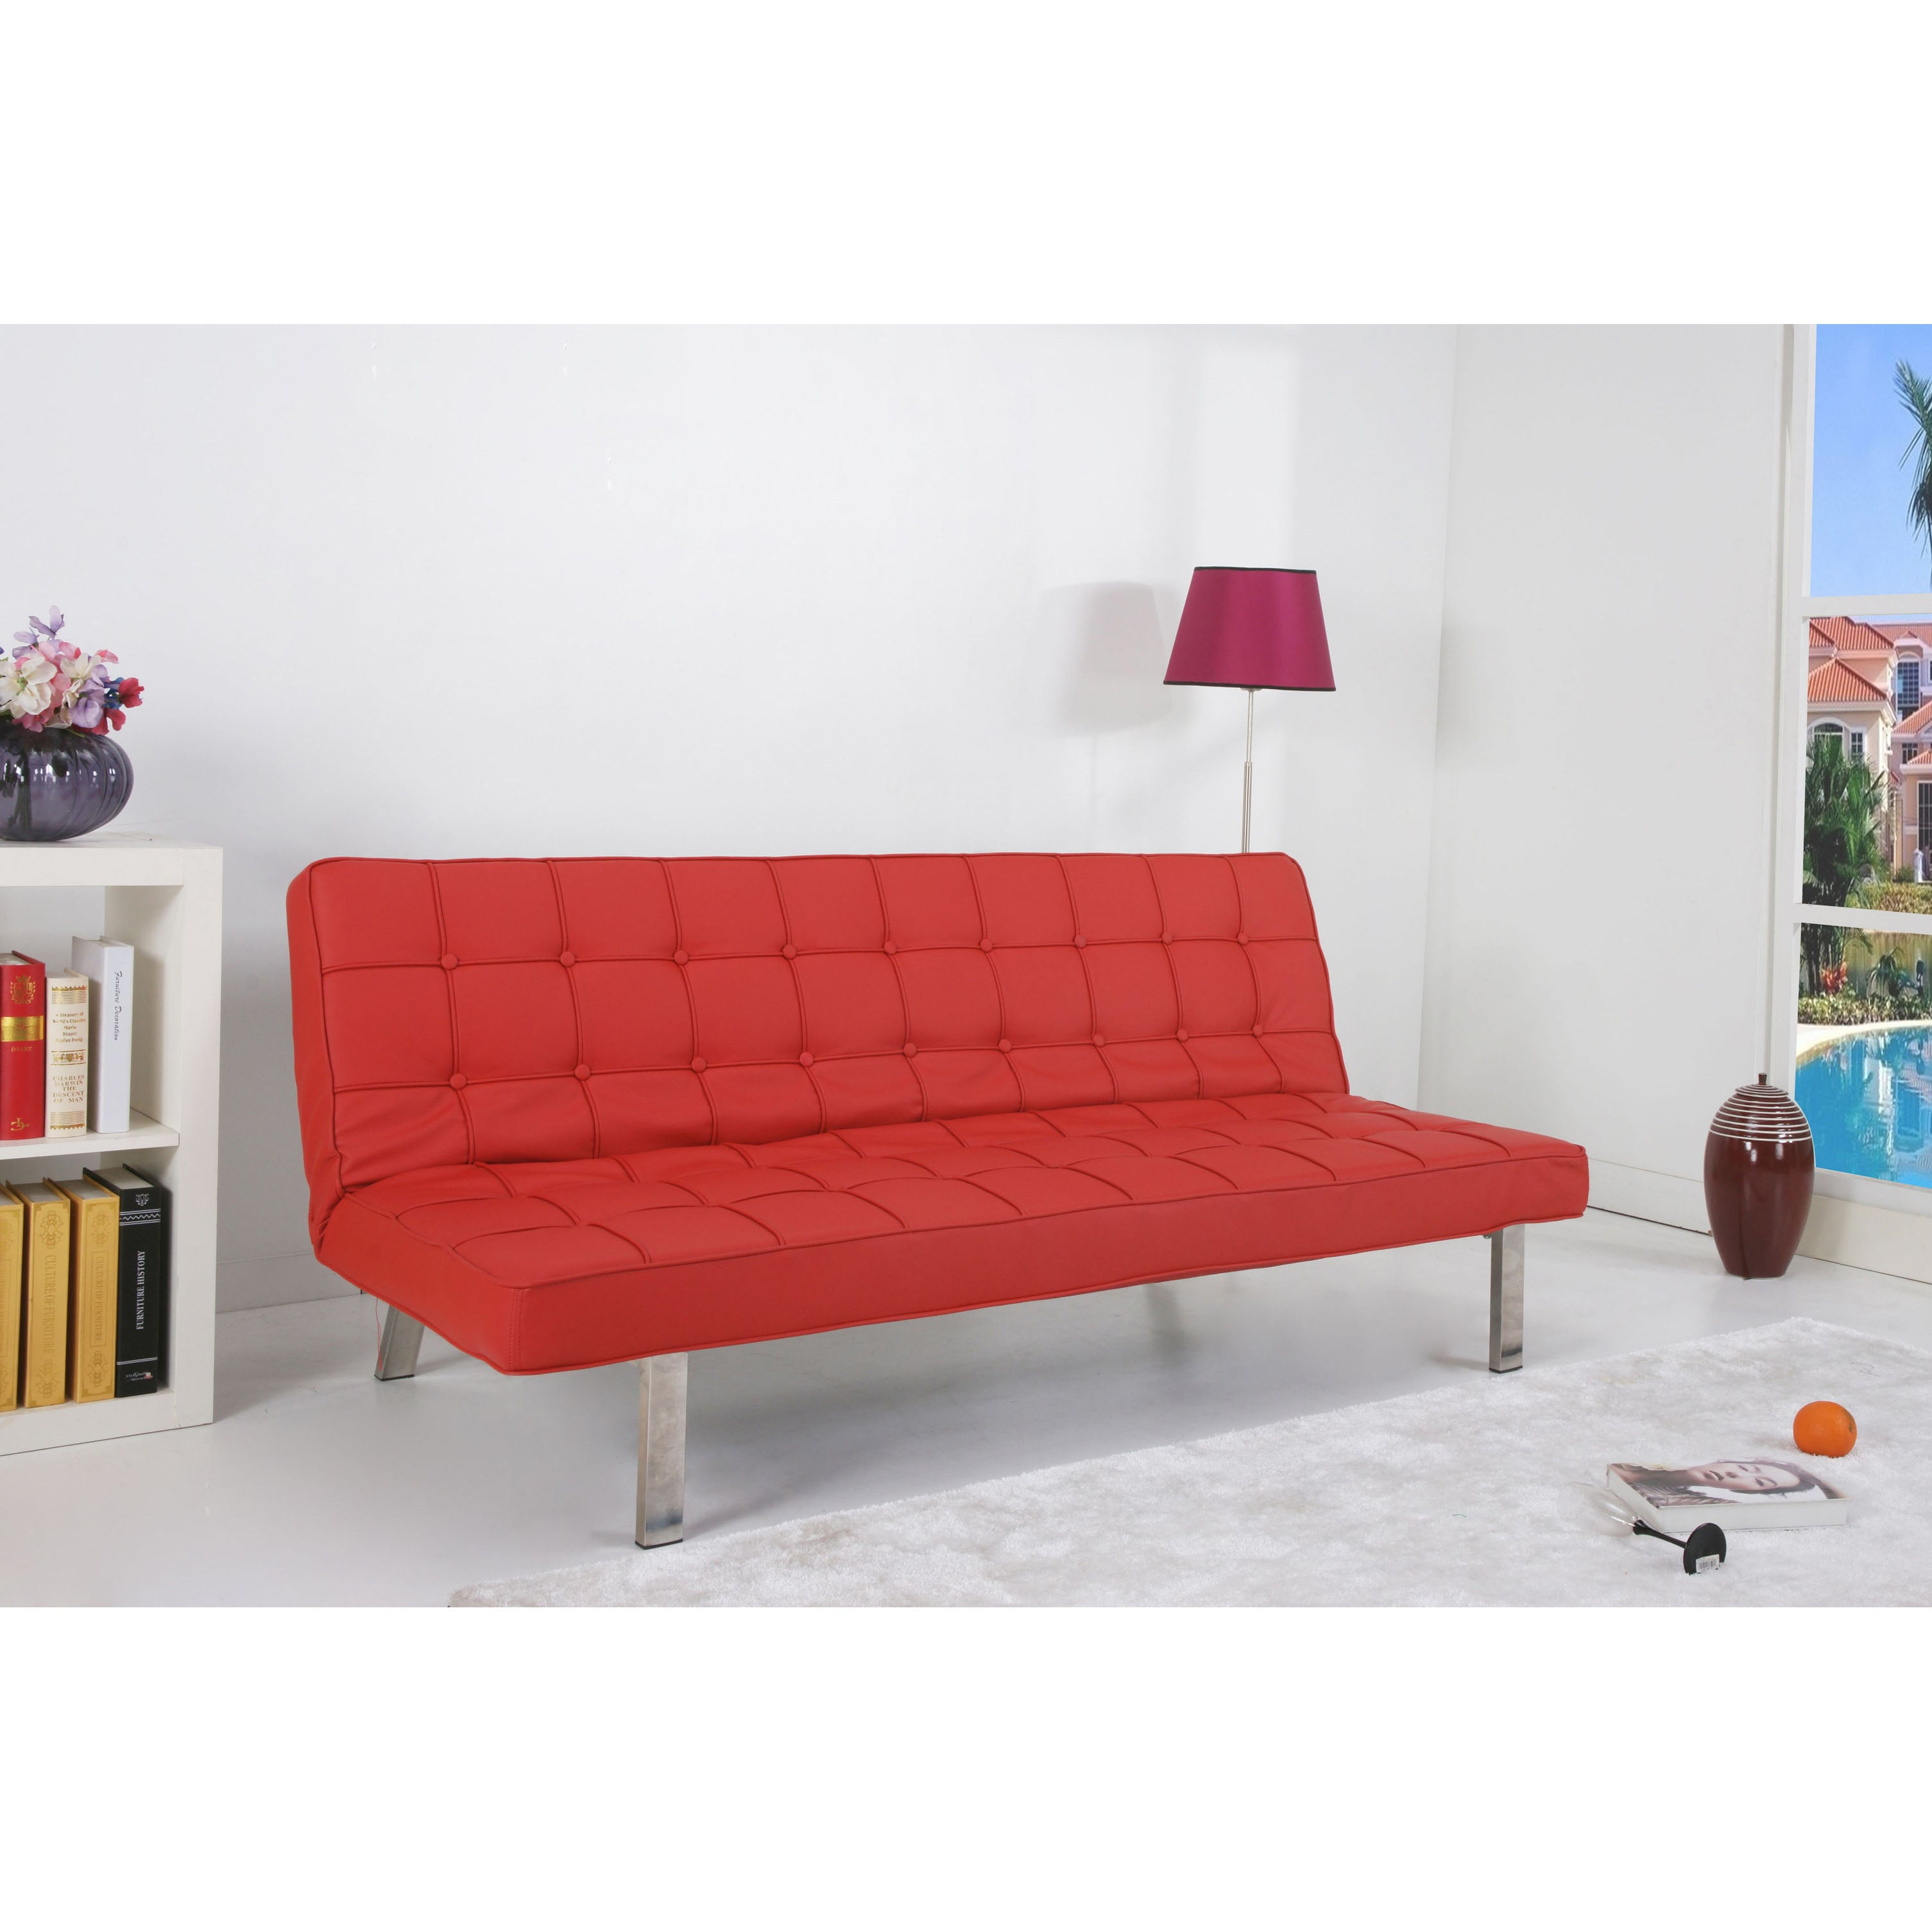 'Vegas' Red Futon Sofa Bed at Sears.com